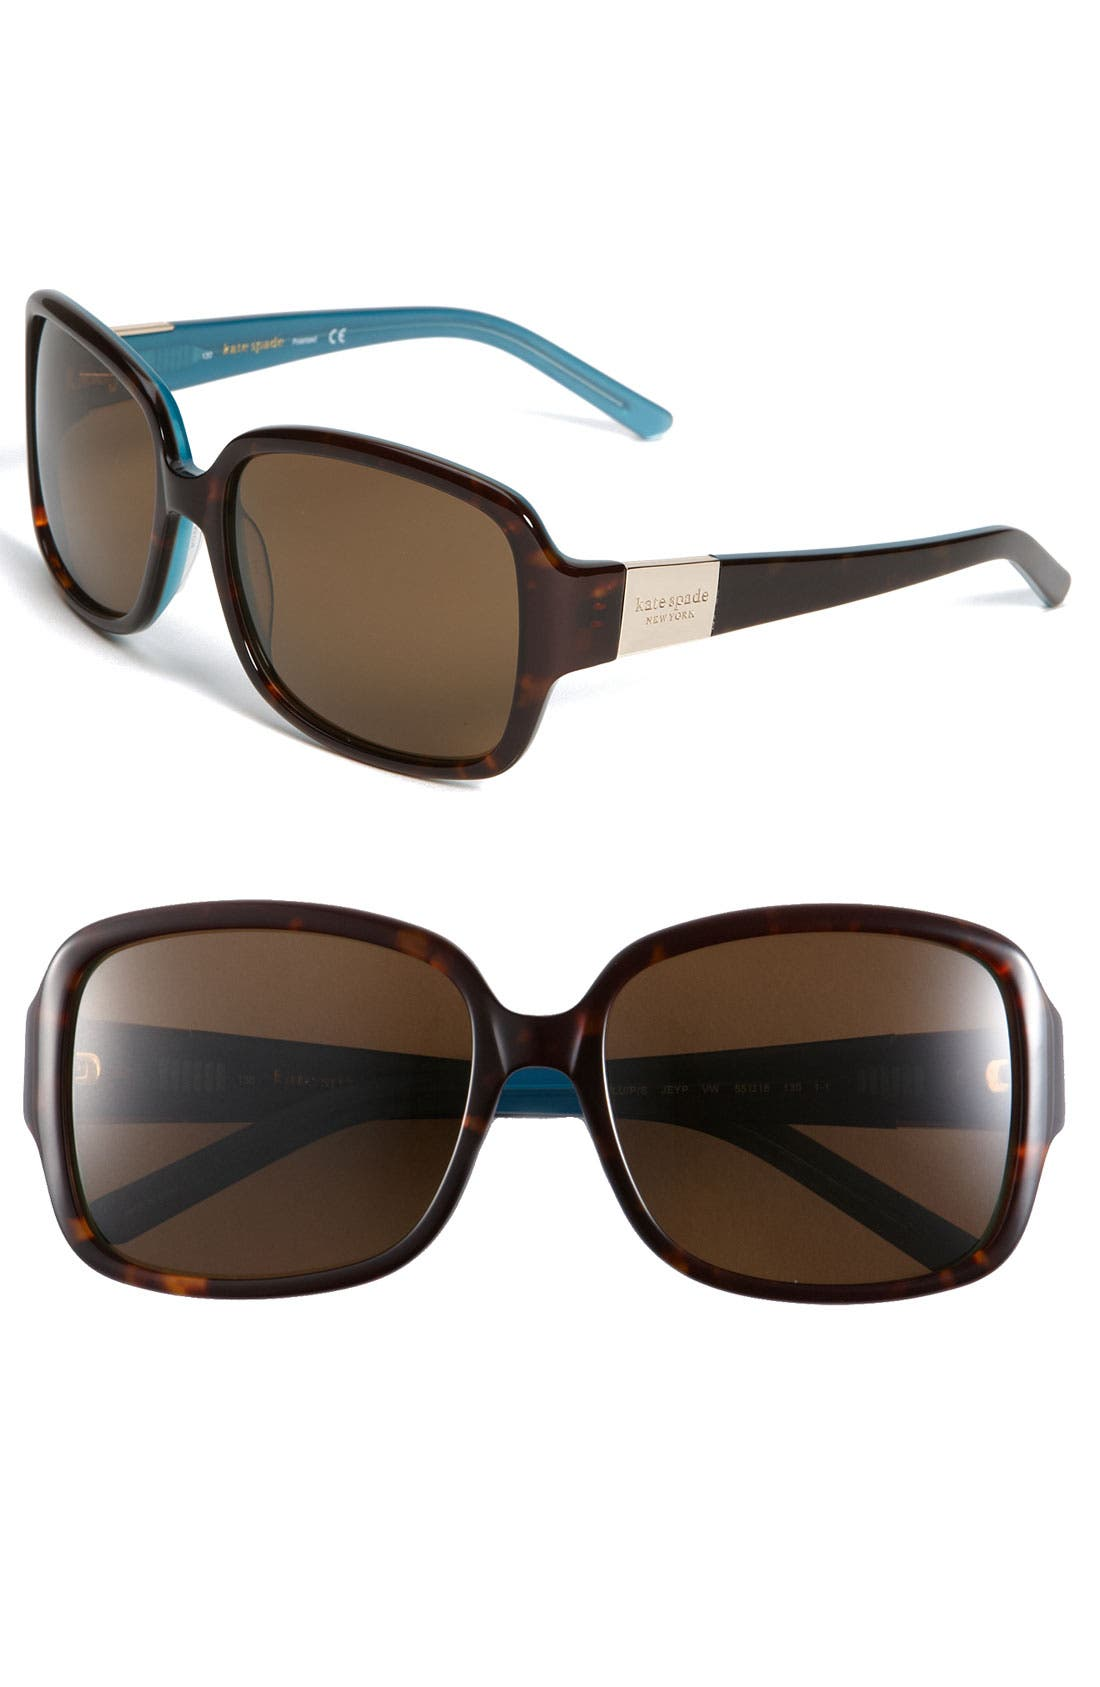 Main Image - kate spade new york 'lulu/p/s' 55mm polarized square sunglasses